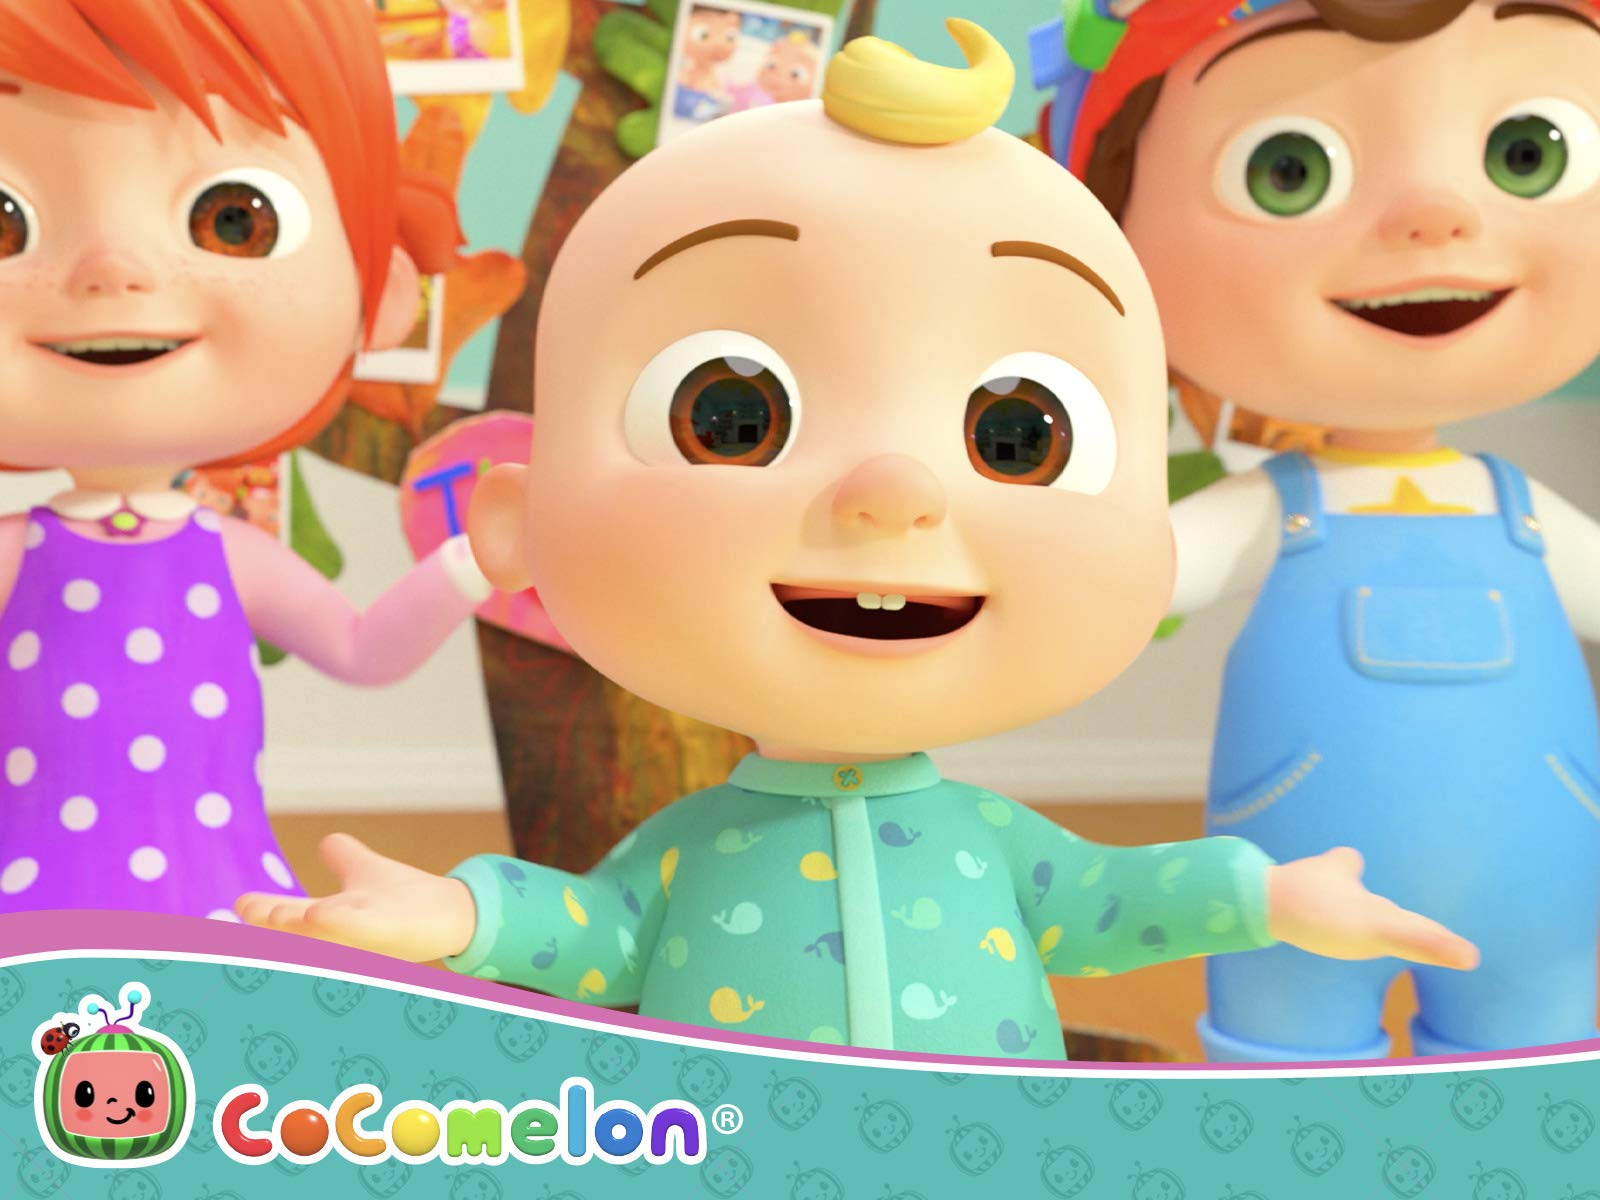 Watch CoComelon - Kids Songs and Nursery Rhymes | Prime Video